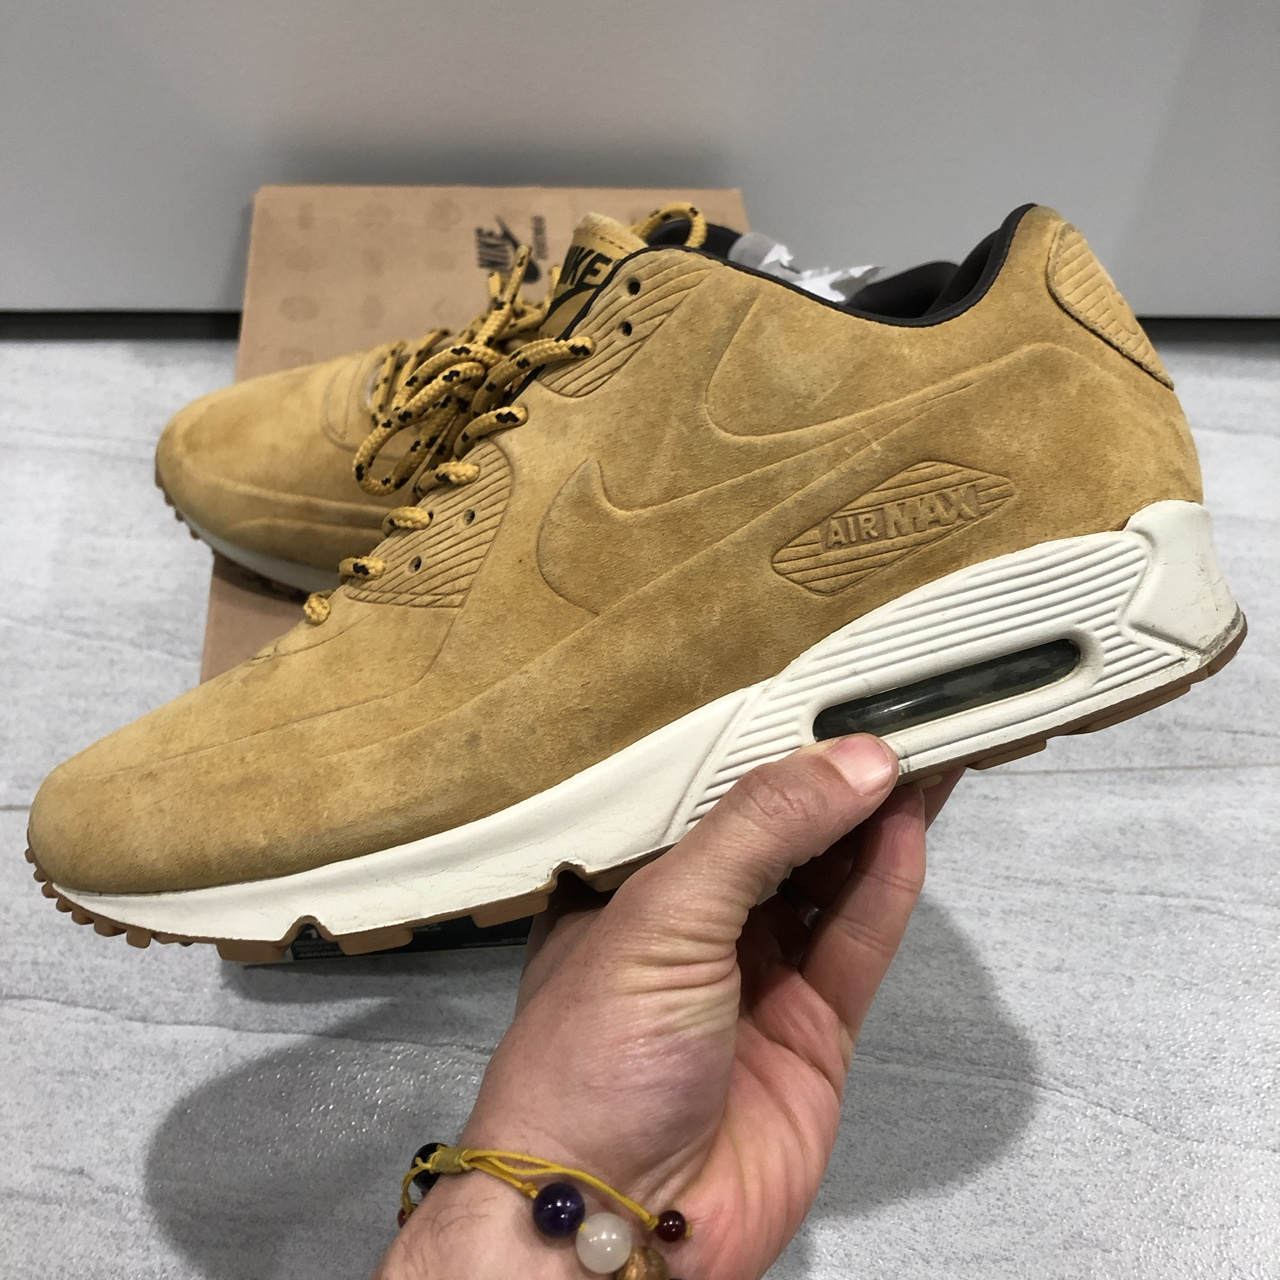 Air Max 90 VT PRM QS. One piece, brushed suede (they